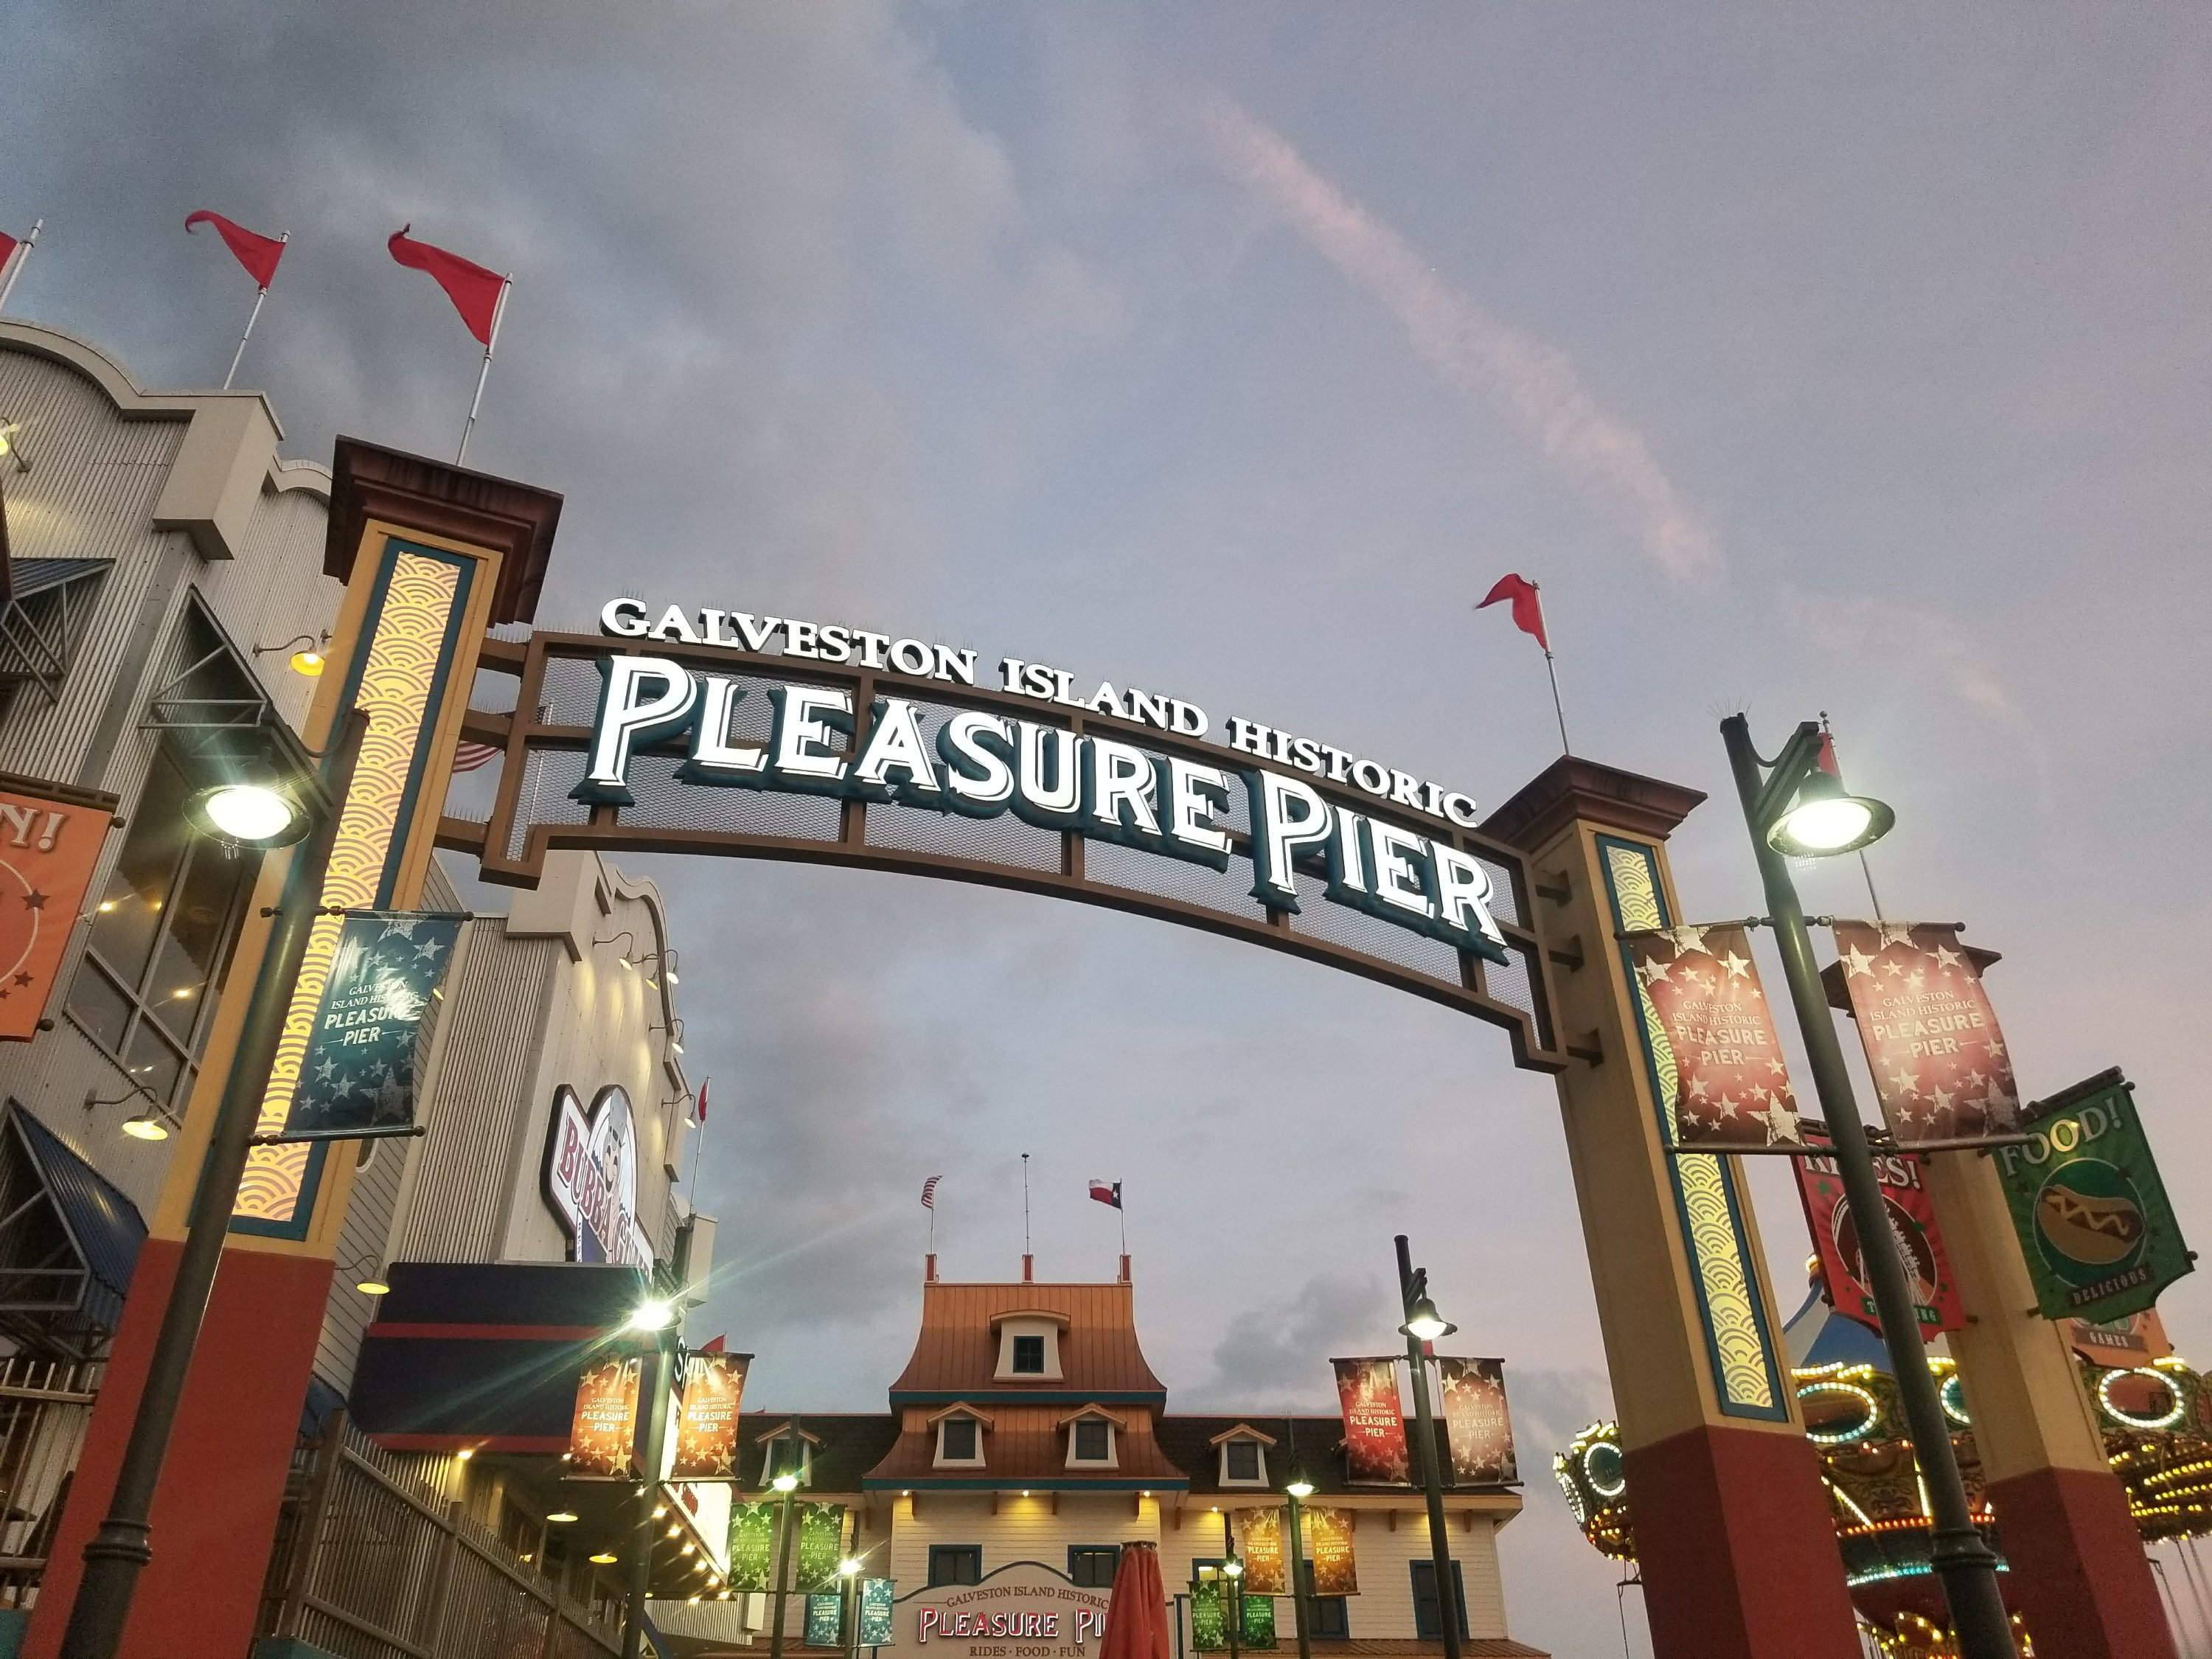 Galveston Pleasure Pier - Family Friendly Fun - Tickets, Events, History, Rides, and More!